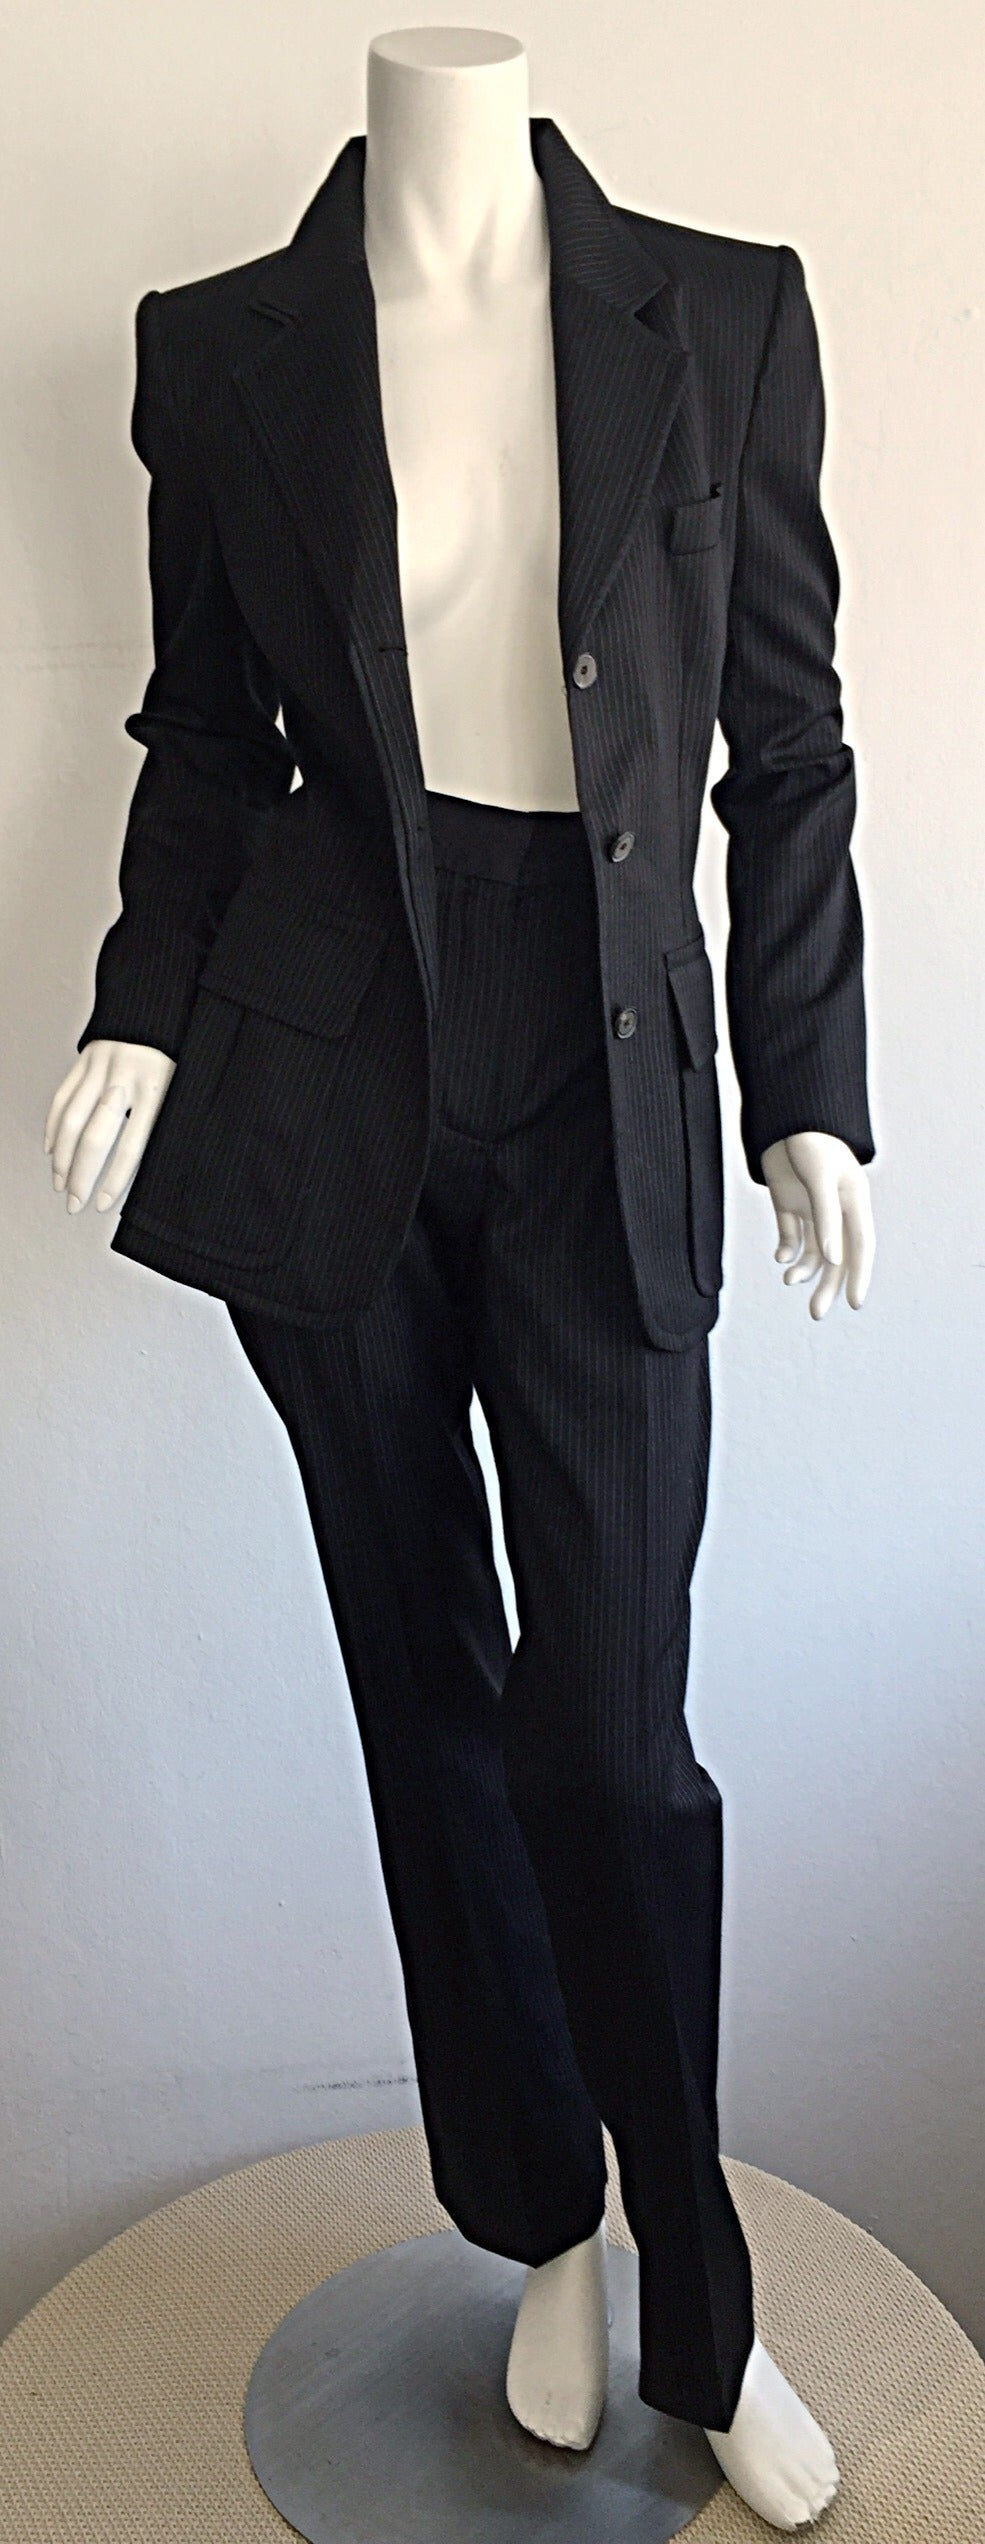 Tom Ford for Yves Saint Laurent Black + White Pinstripe Le Smoking Trouser Suit For Sale 2